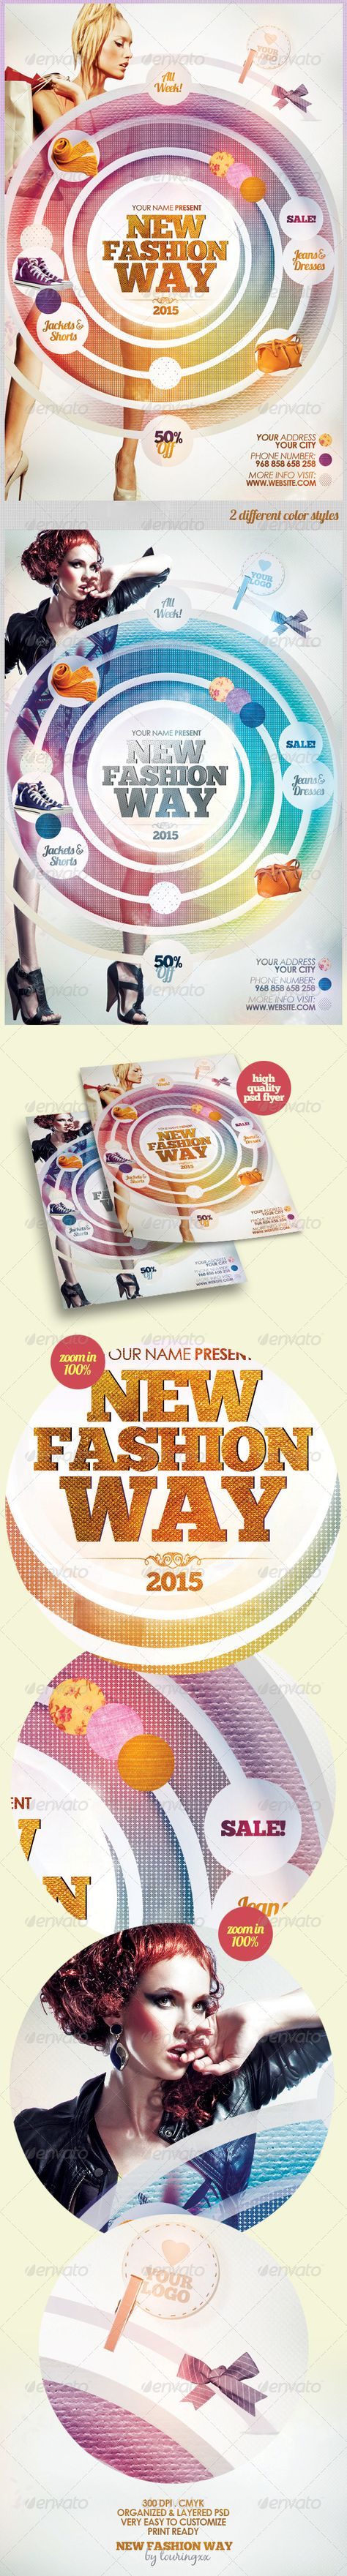 New Fashion Way Flyer Template / $6. *** This flyer is perfect for the promotion of Shops/Boutiques, Fashion Shows, New Collections or whatever you want!.***